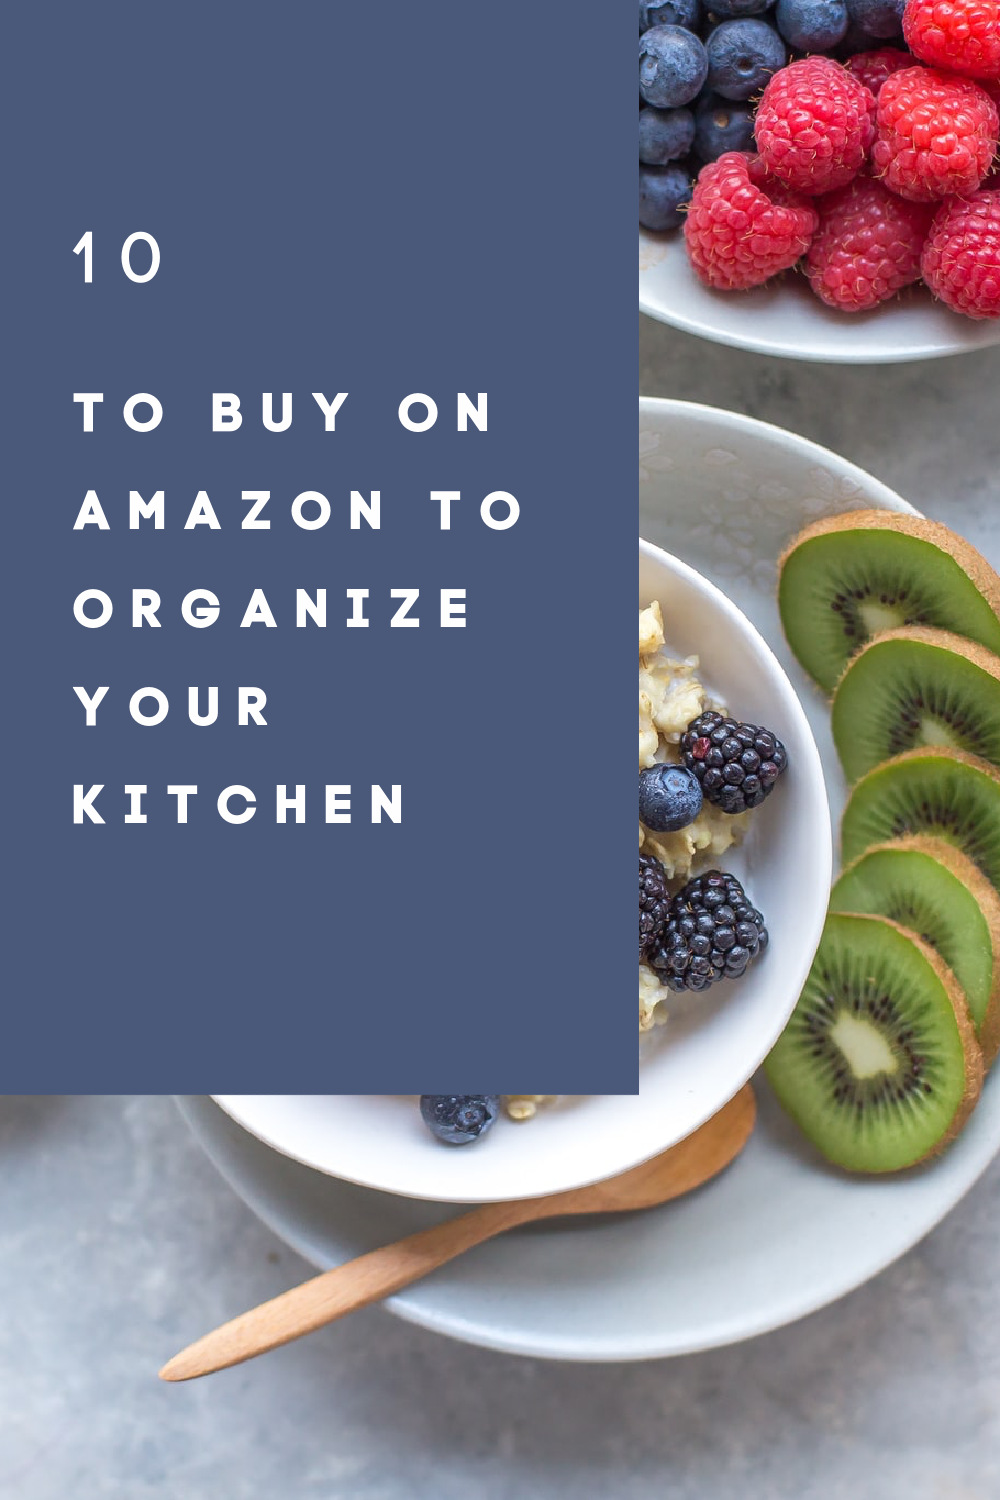 10 Things To Buy On Amazon To Organize Your Kitchen